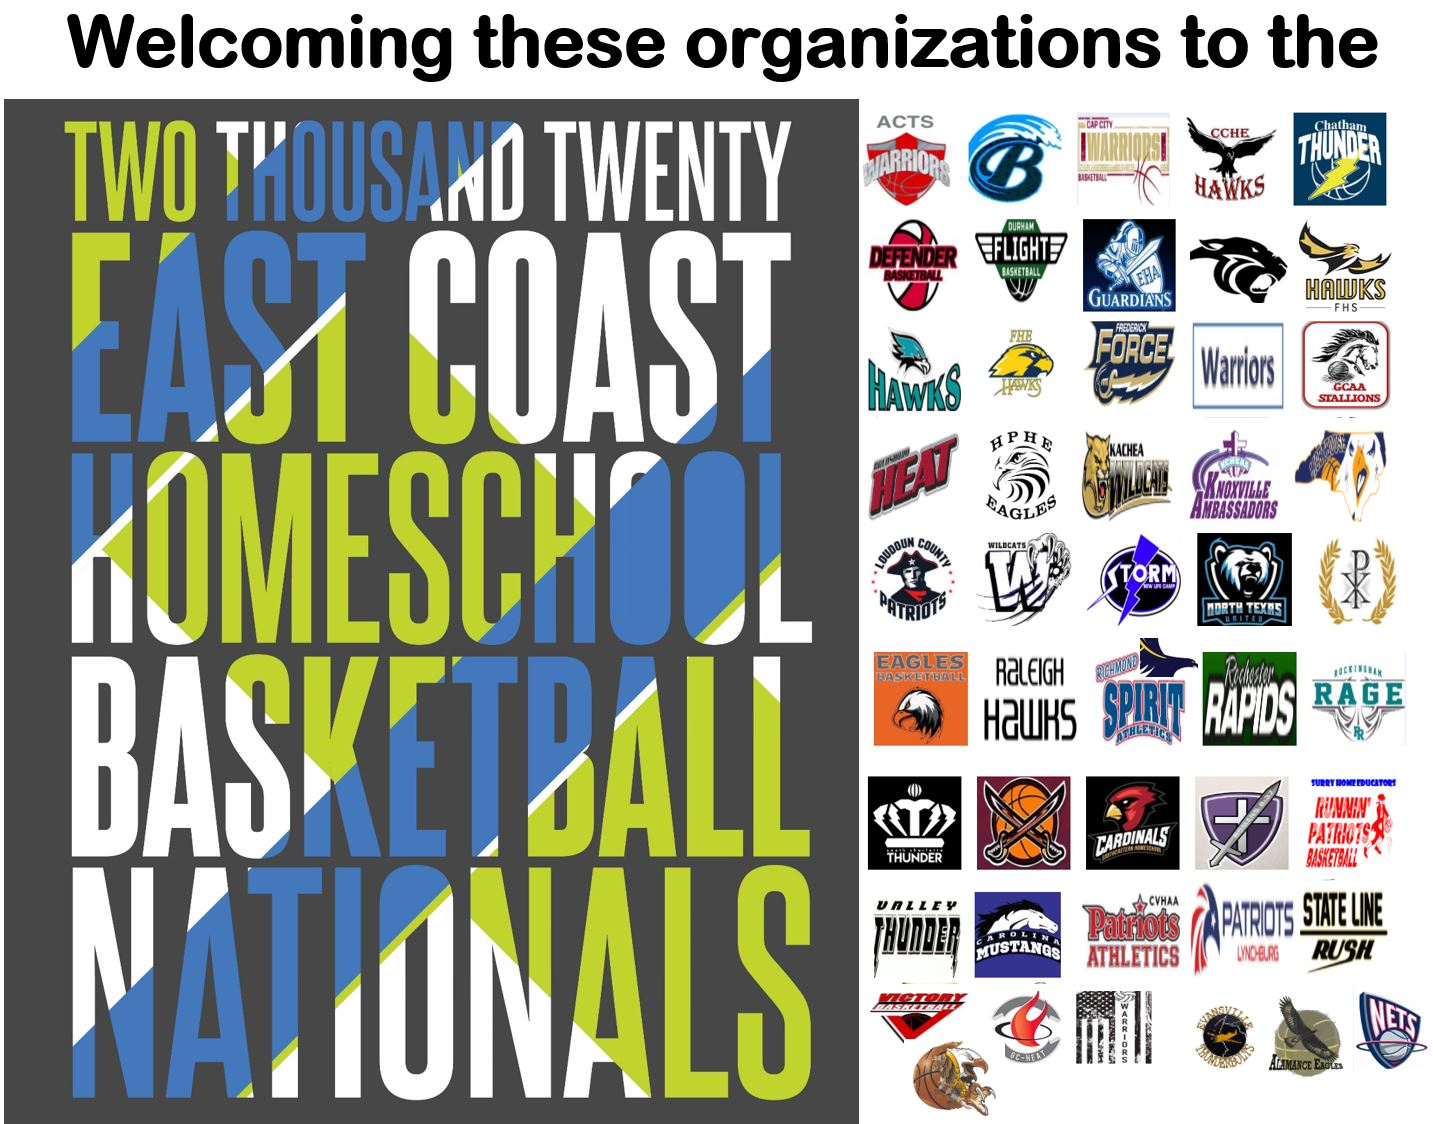 The 2020 East Coast Homeschool Basketball Nationals will be March 17-21, 2020 in Lynchburg, VA at the NCAA Division 1 campus of Liberty University